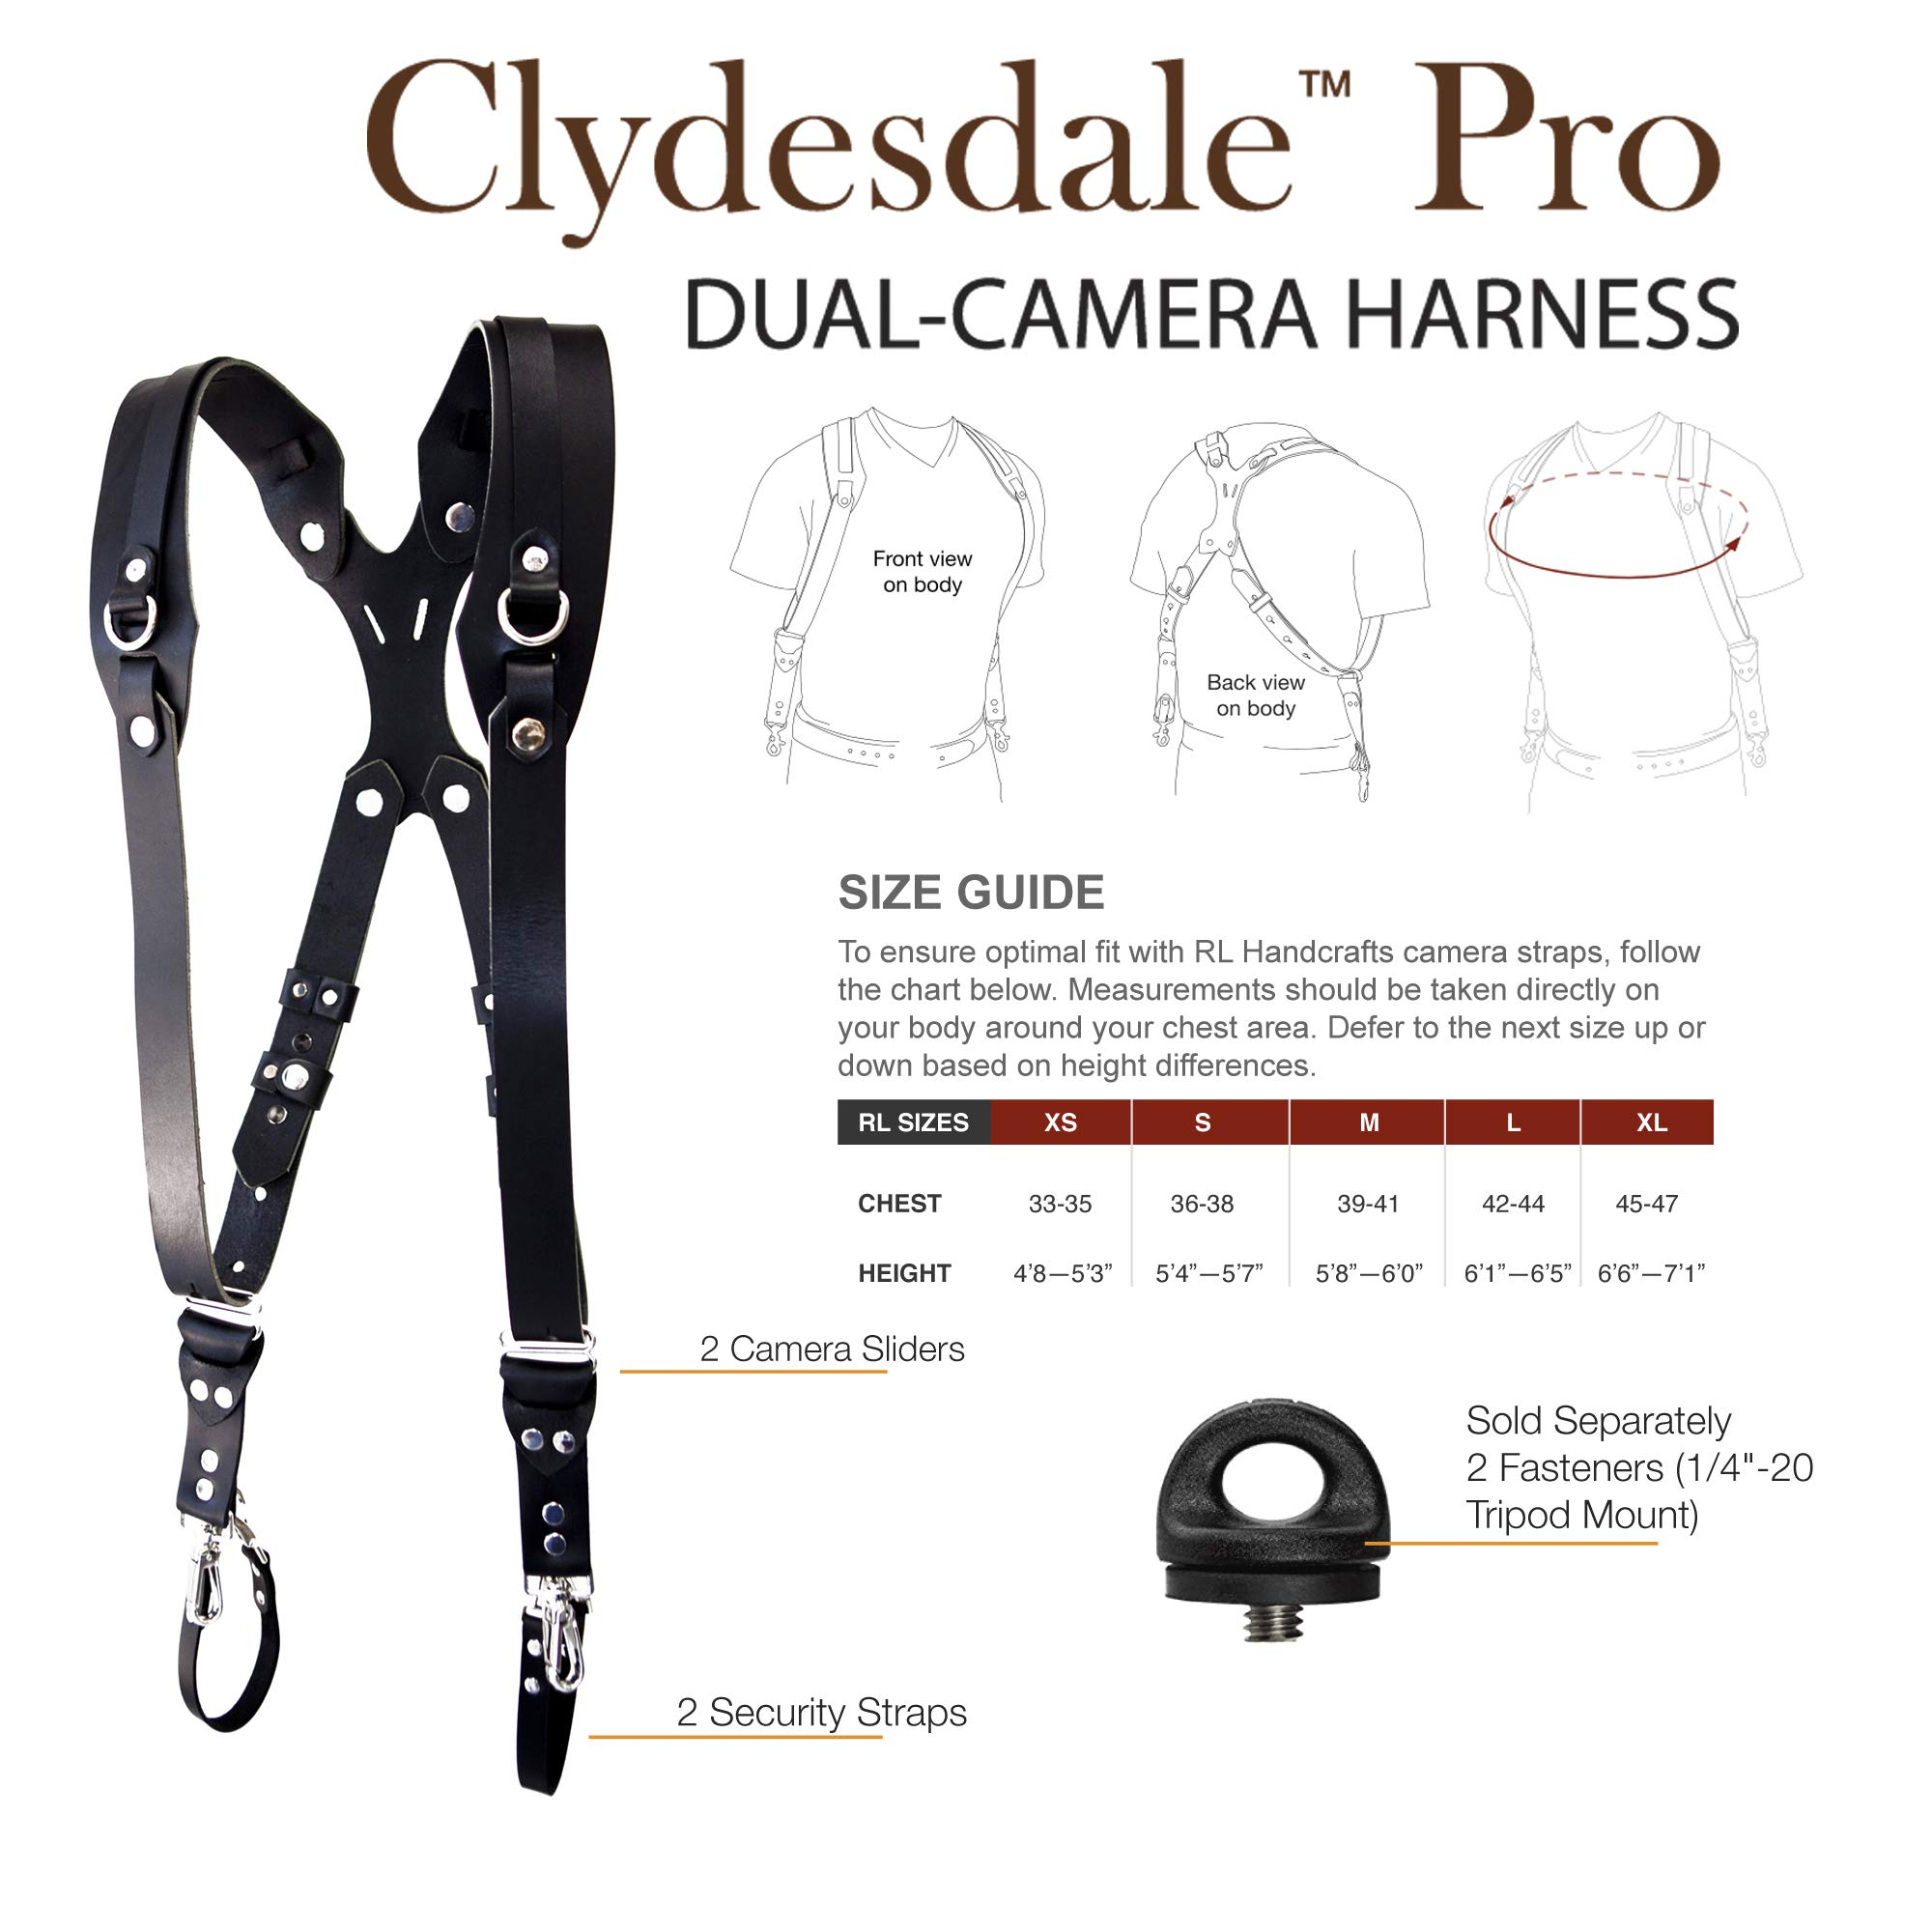 Clydesdale Pro-Dual Handmade Leather Camera Harness, Sling & Strap RL Handcrafts. DLSR, Mirrorless, Point & Shoot Made in The USA (Black, X-Large) by Republic Leather Company (Image #3)